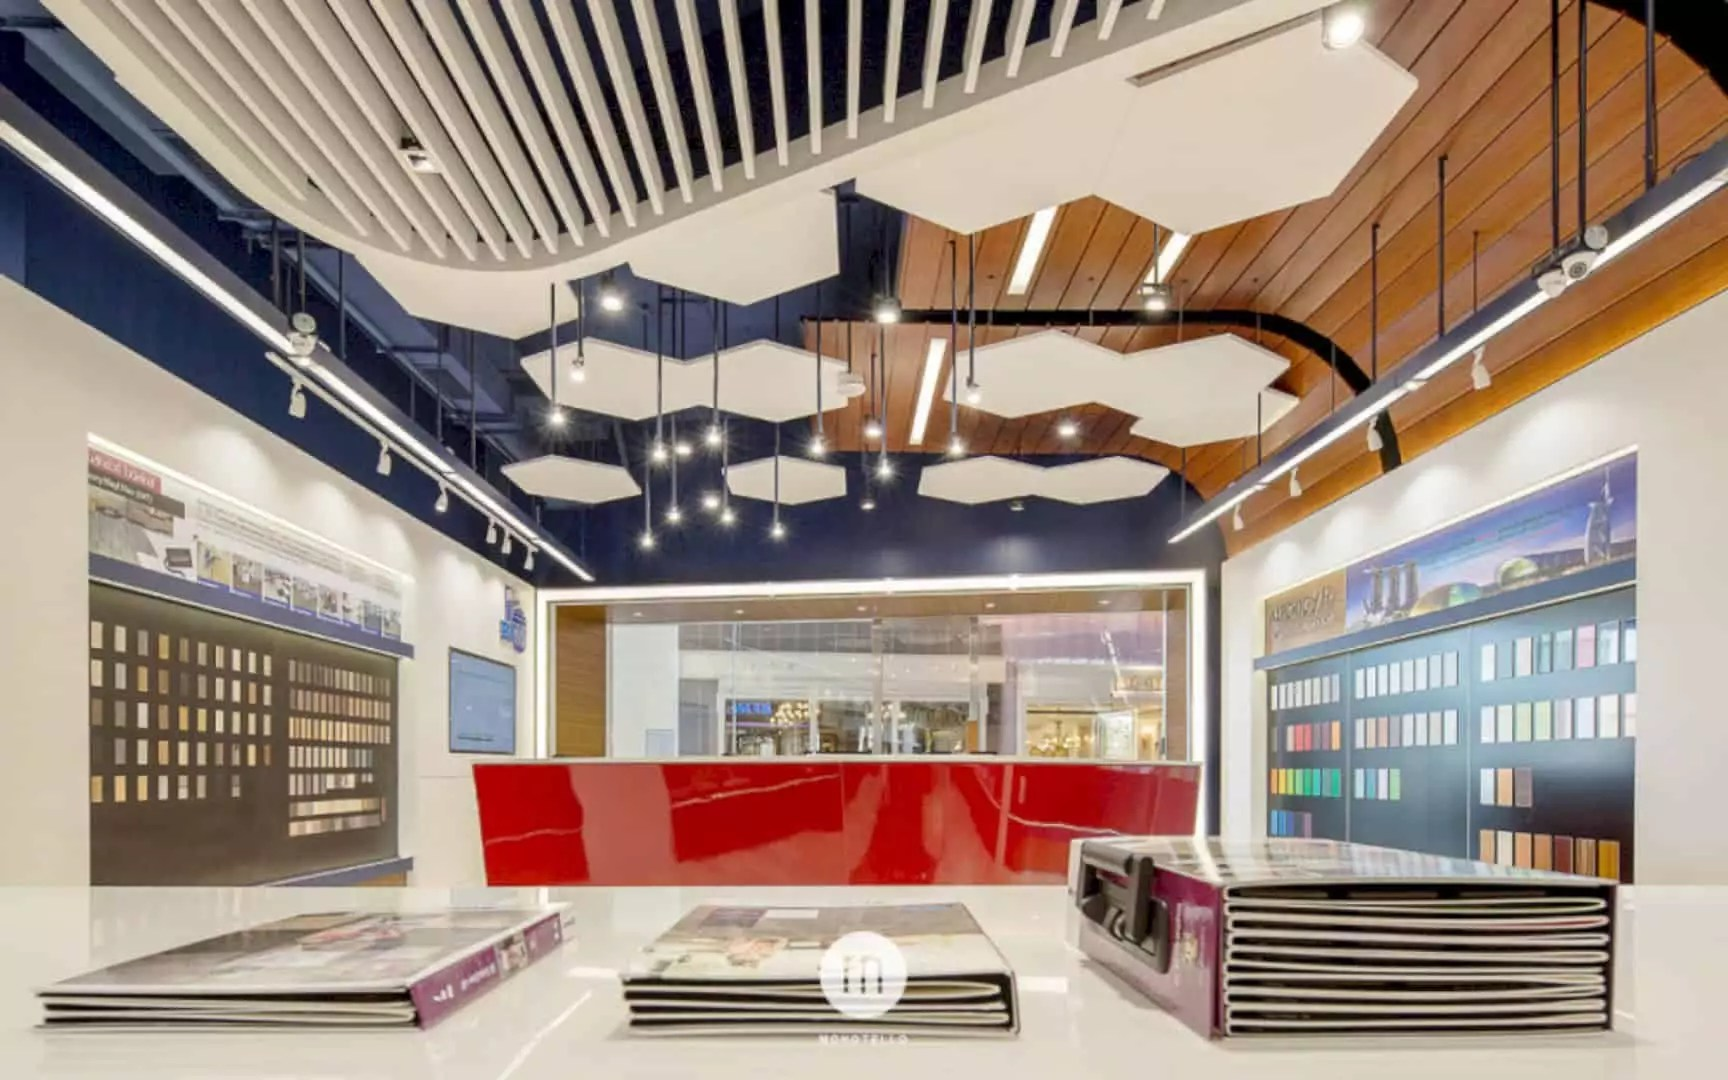 BFM Showroom at CDC: Luxury Interior Design of Showroom with Bright Atmosphere